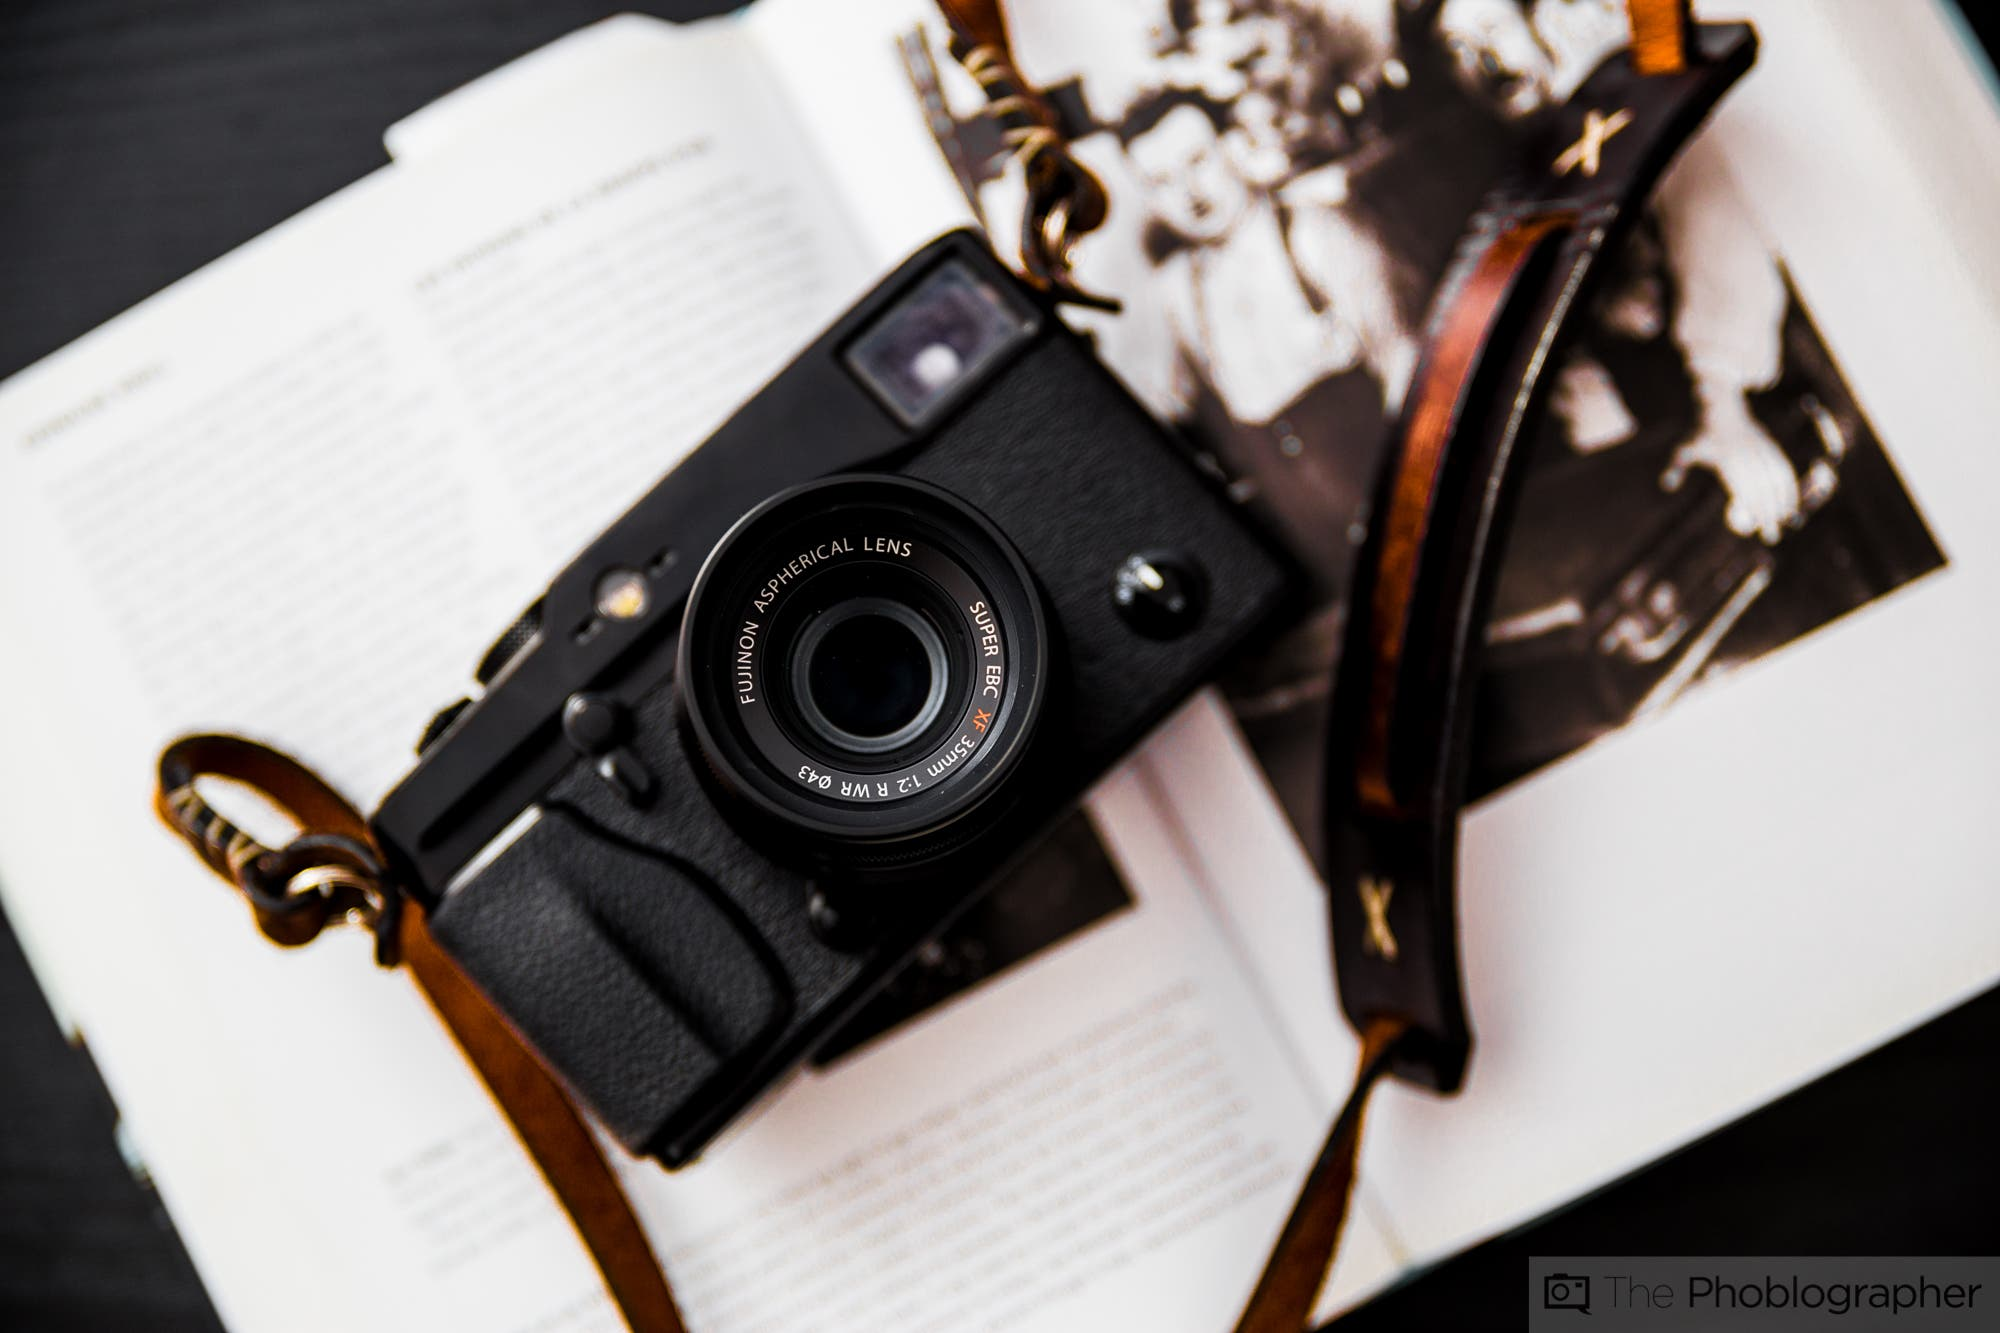 Magnum Photos Possibly Confirms Release of Fujifilm X Pro 2